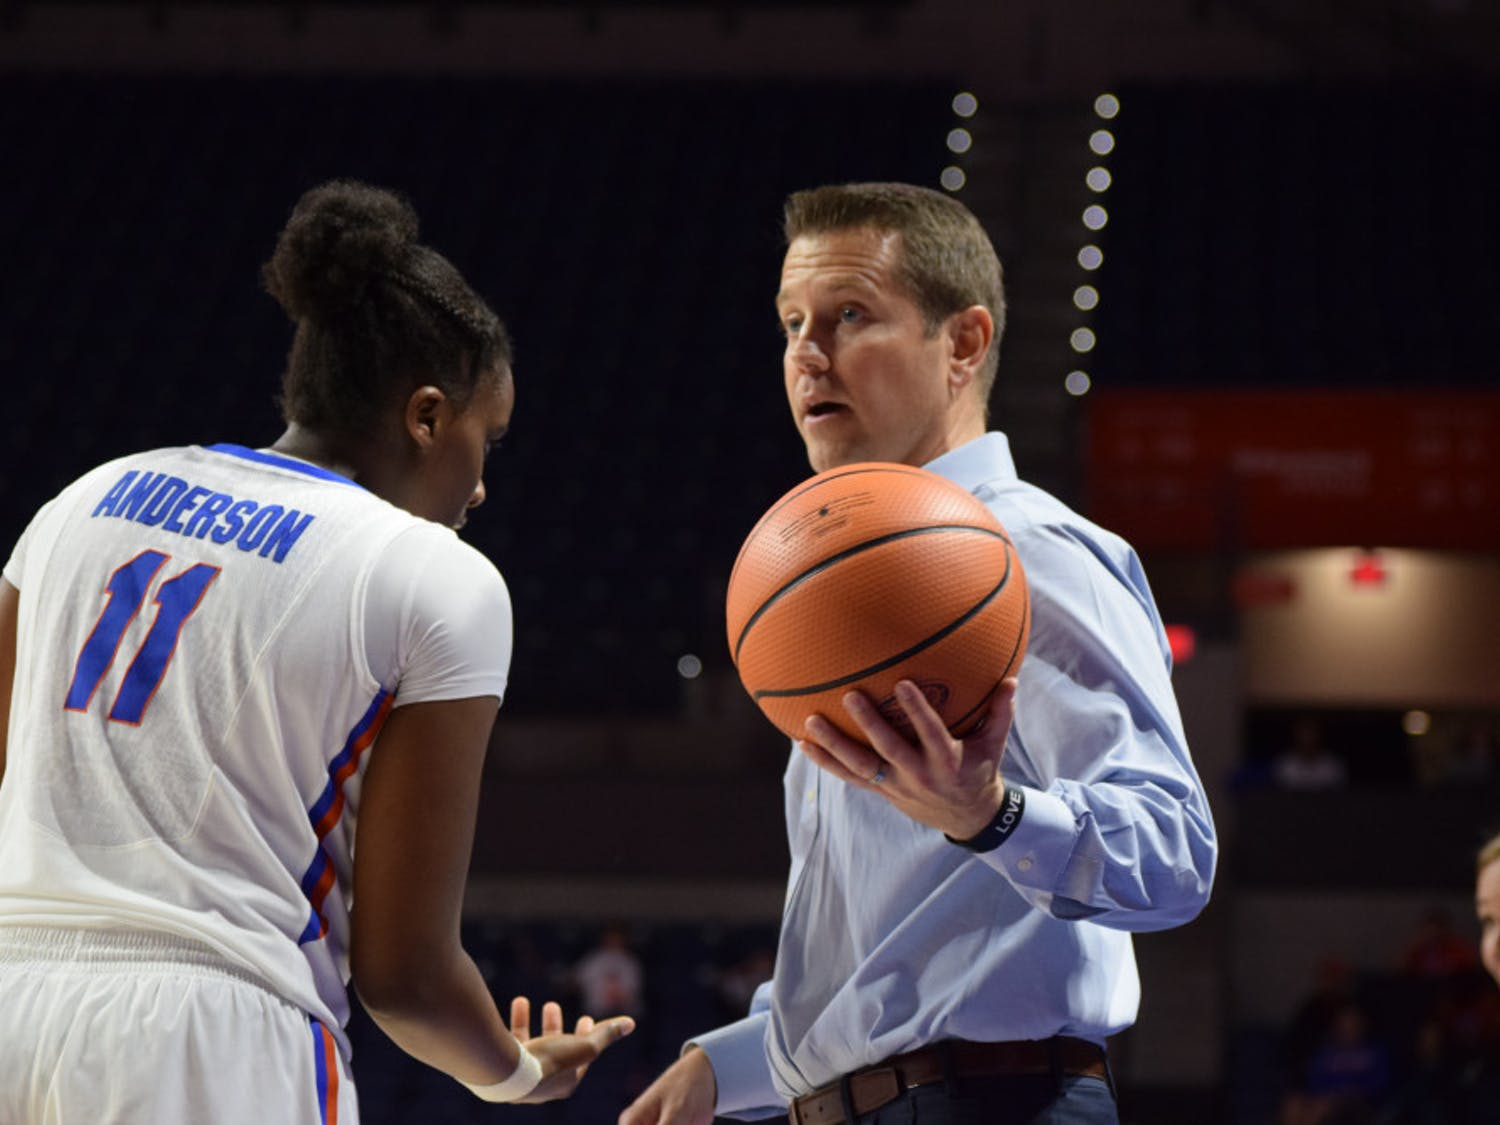 Arkansas State defeated the Gators, 70-69, in the O'Connell Center on Tuesday night.It was the first loss at UF for new coach Cameron Newbauer, who Florida hired on March 27 to fix an underperforming women's basketball program.